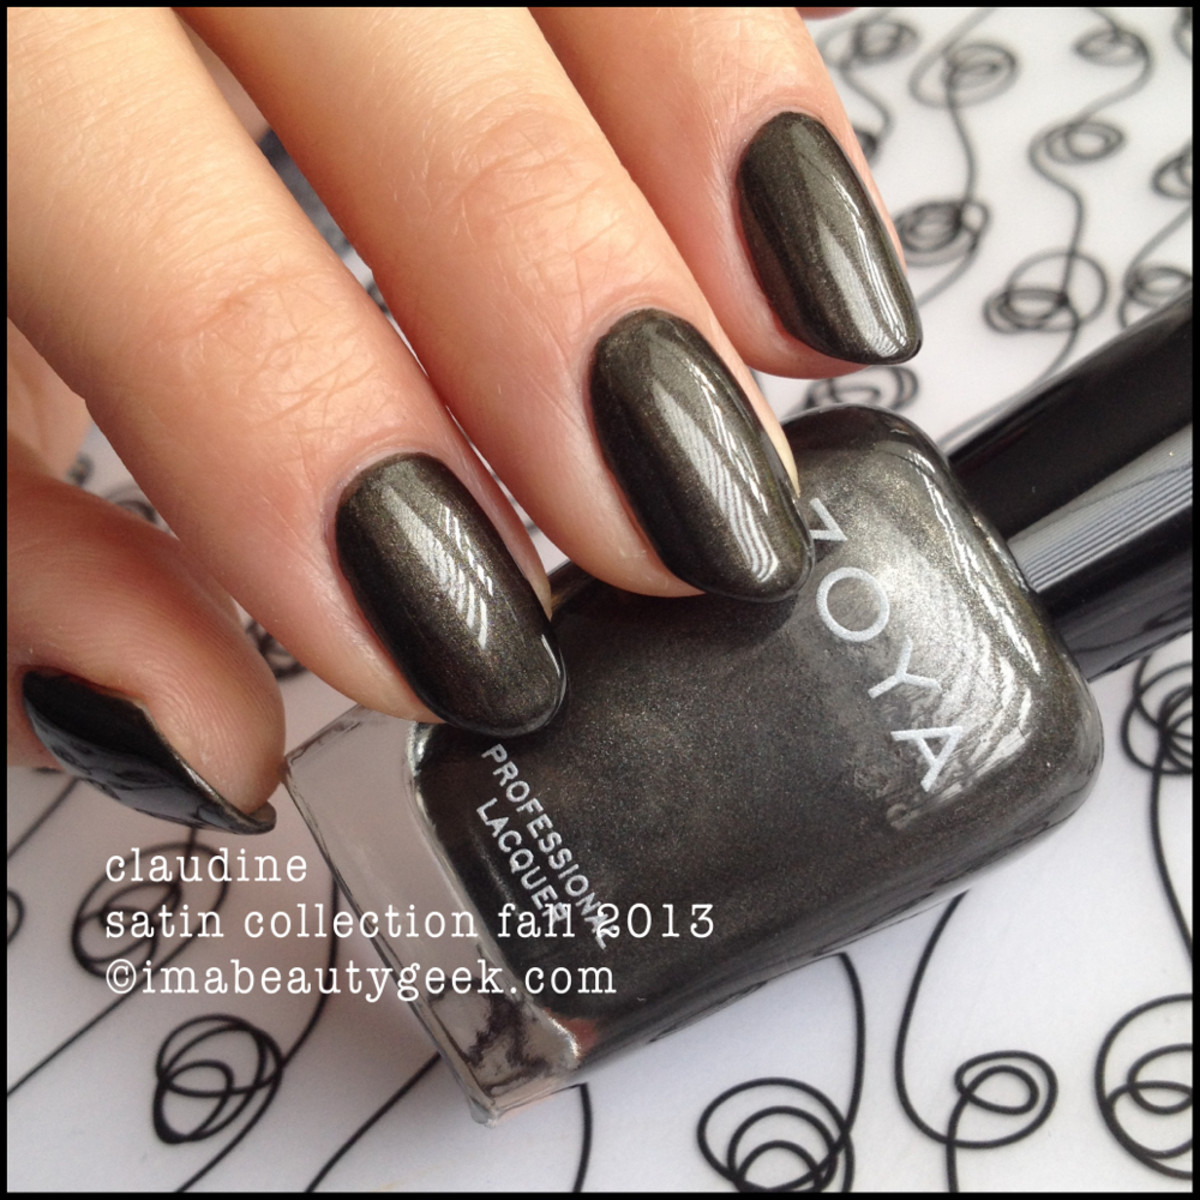 Zoya Claudine Fall 2013 Satin Collection